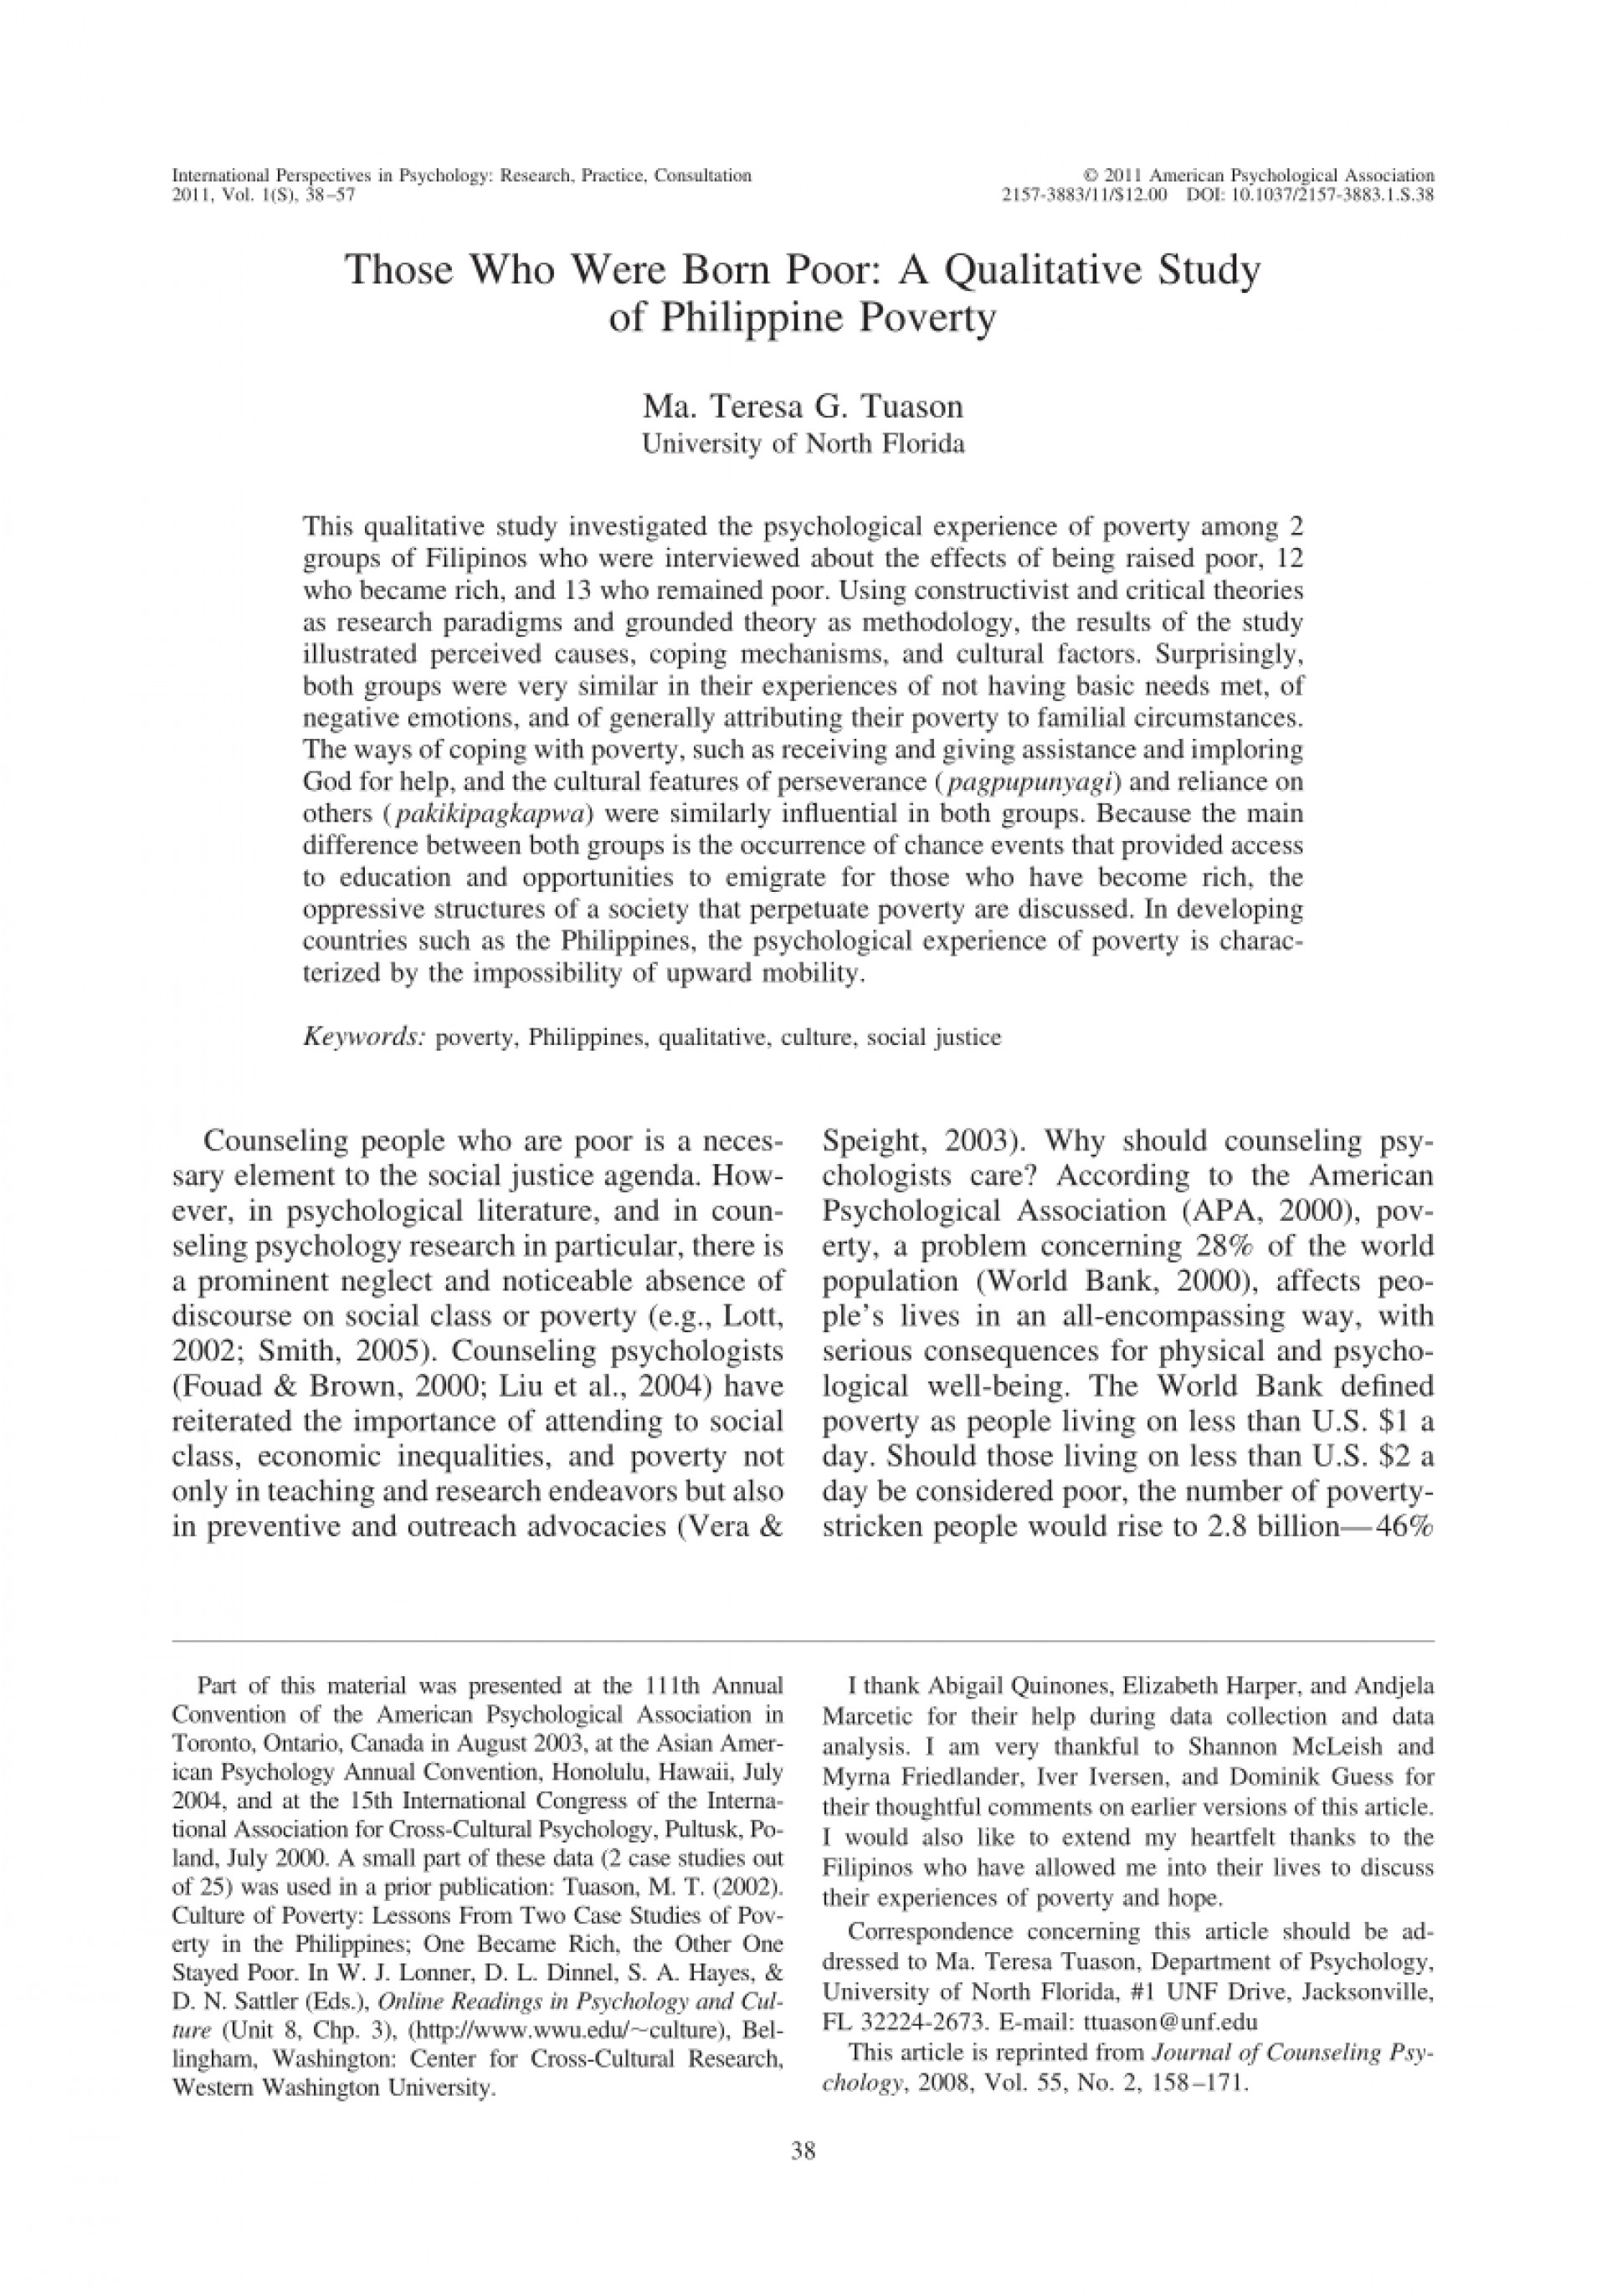 002 Poverty In The Philippines Research Paper Abstract Remarkable 1920